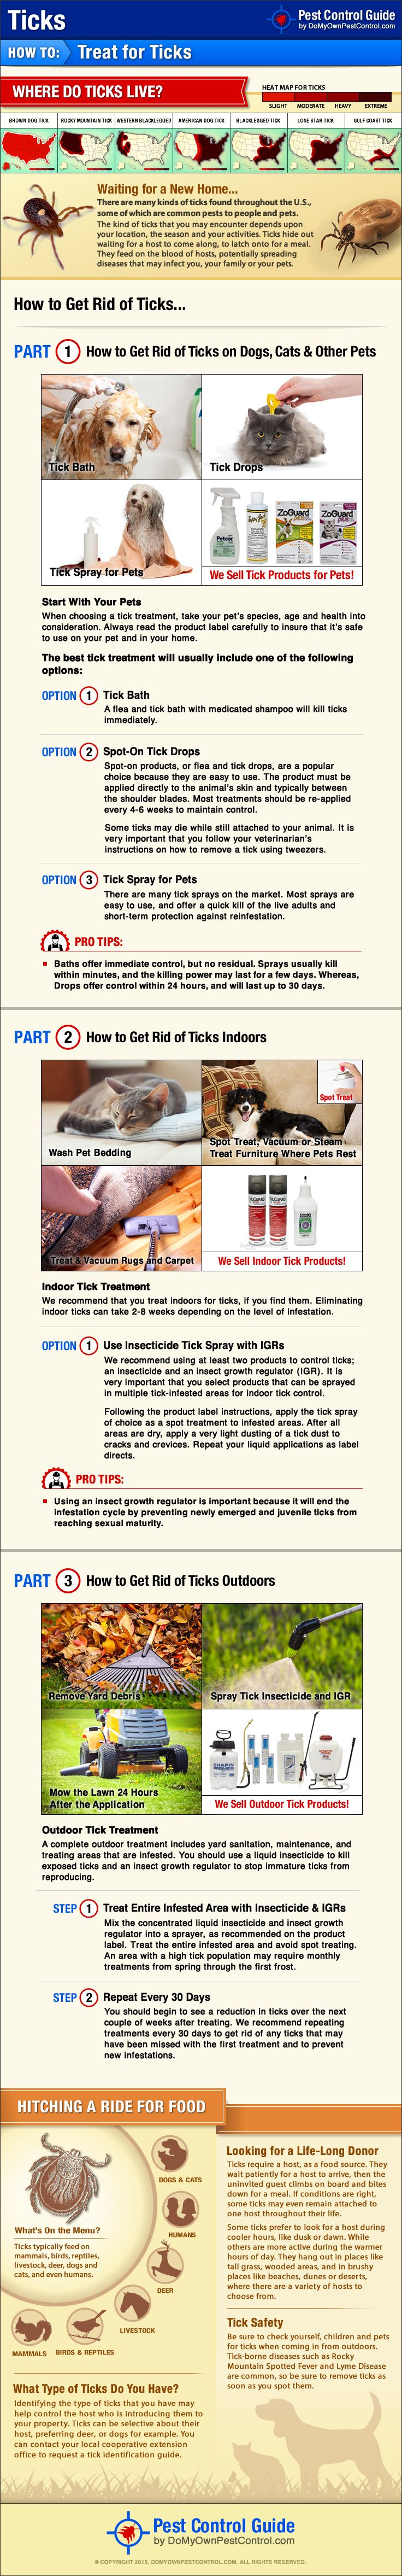 Learn how to get rid of ticks with the DIY tick treatment guide. Use this tick control kit when following these steps: http://www.domyownpestcontrol.com/tick-control-kit-p-2924.html